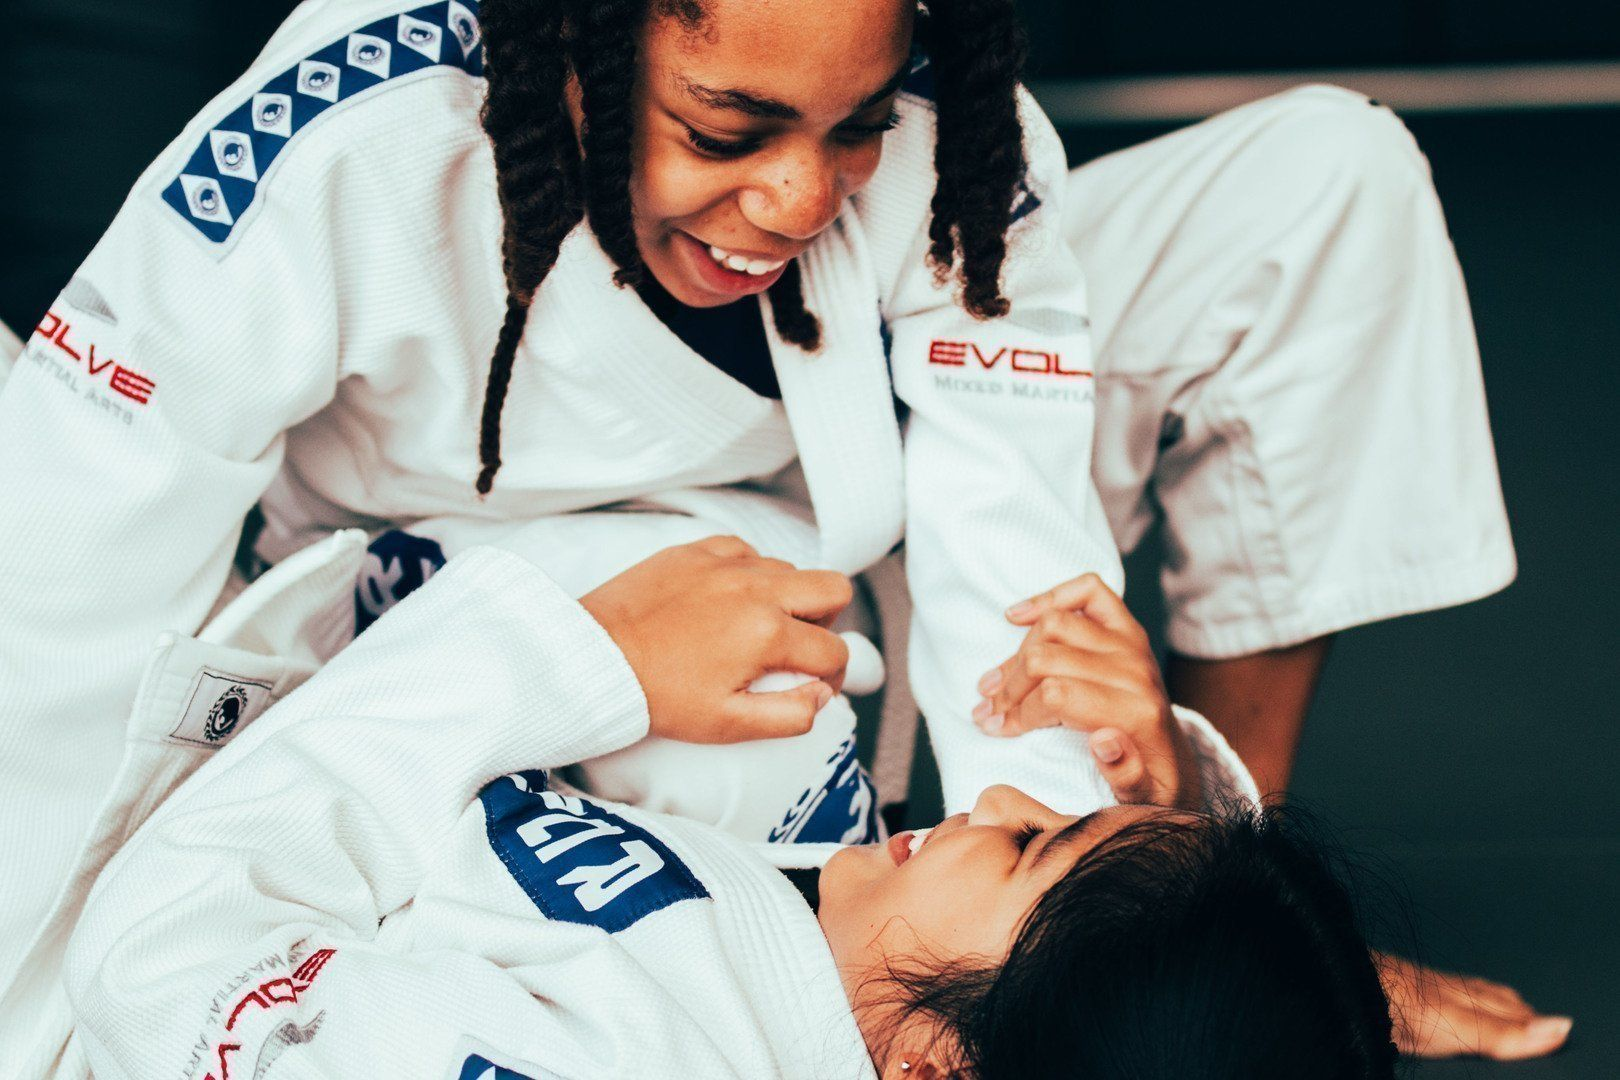 BJJ is a fun way to keep active!